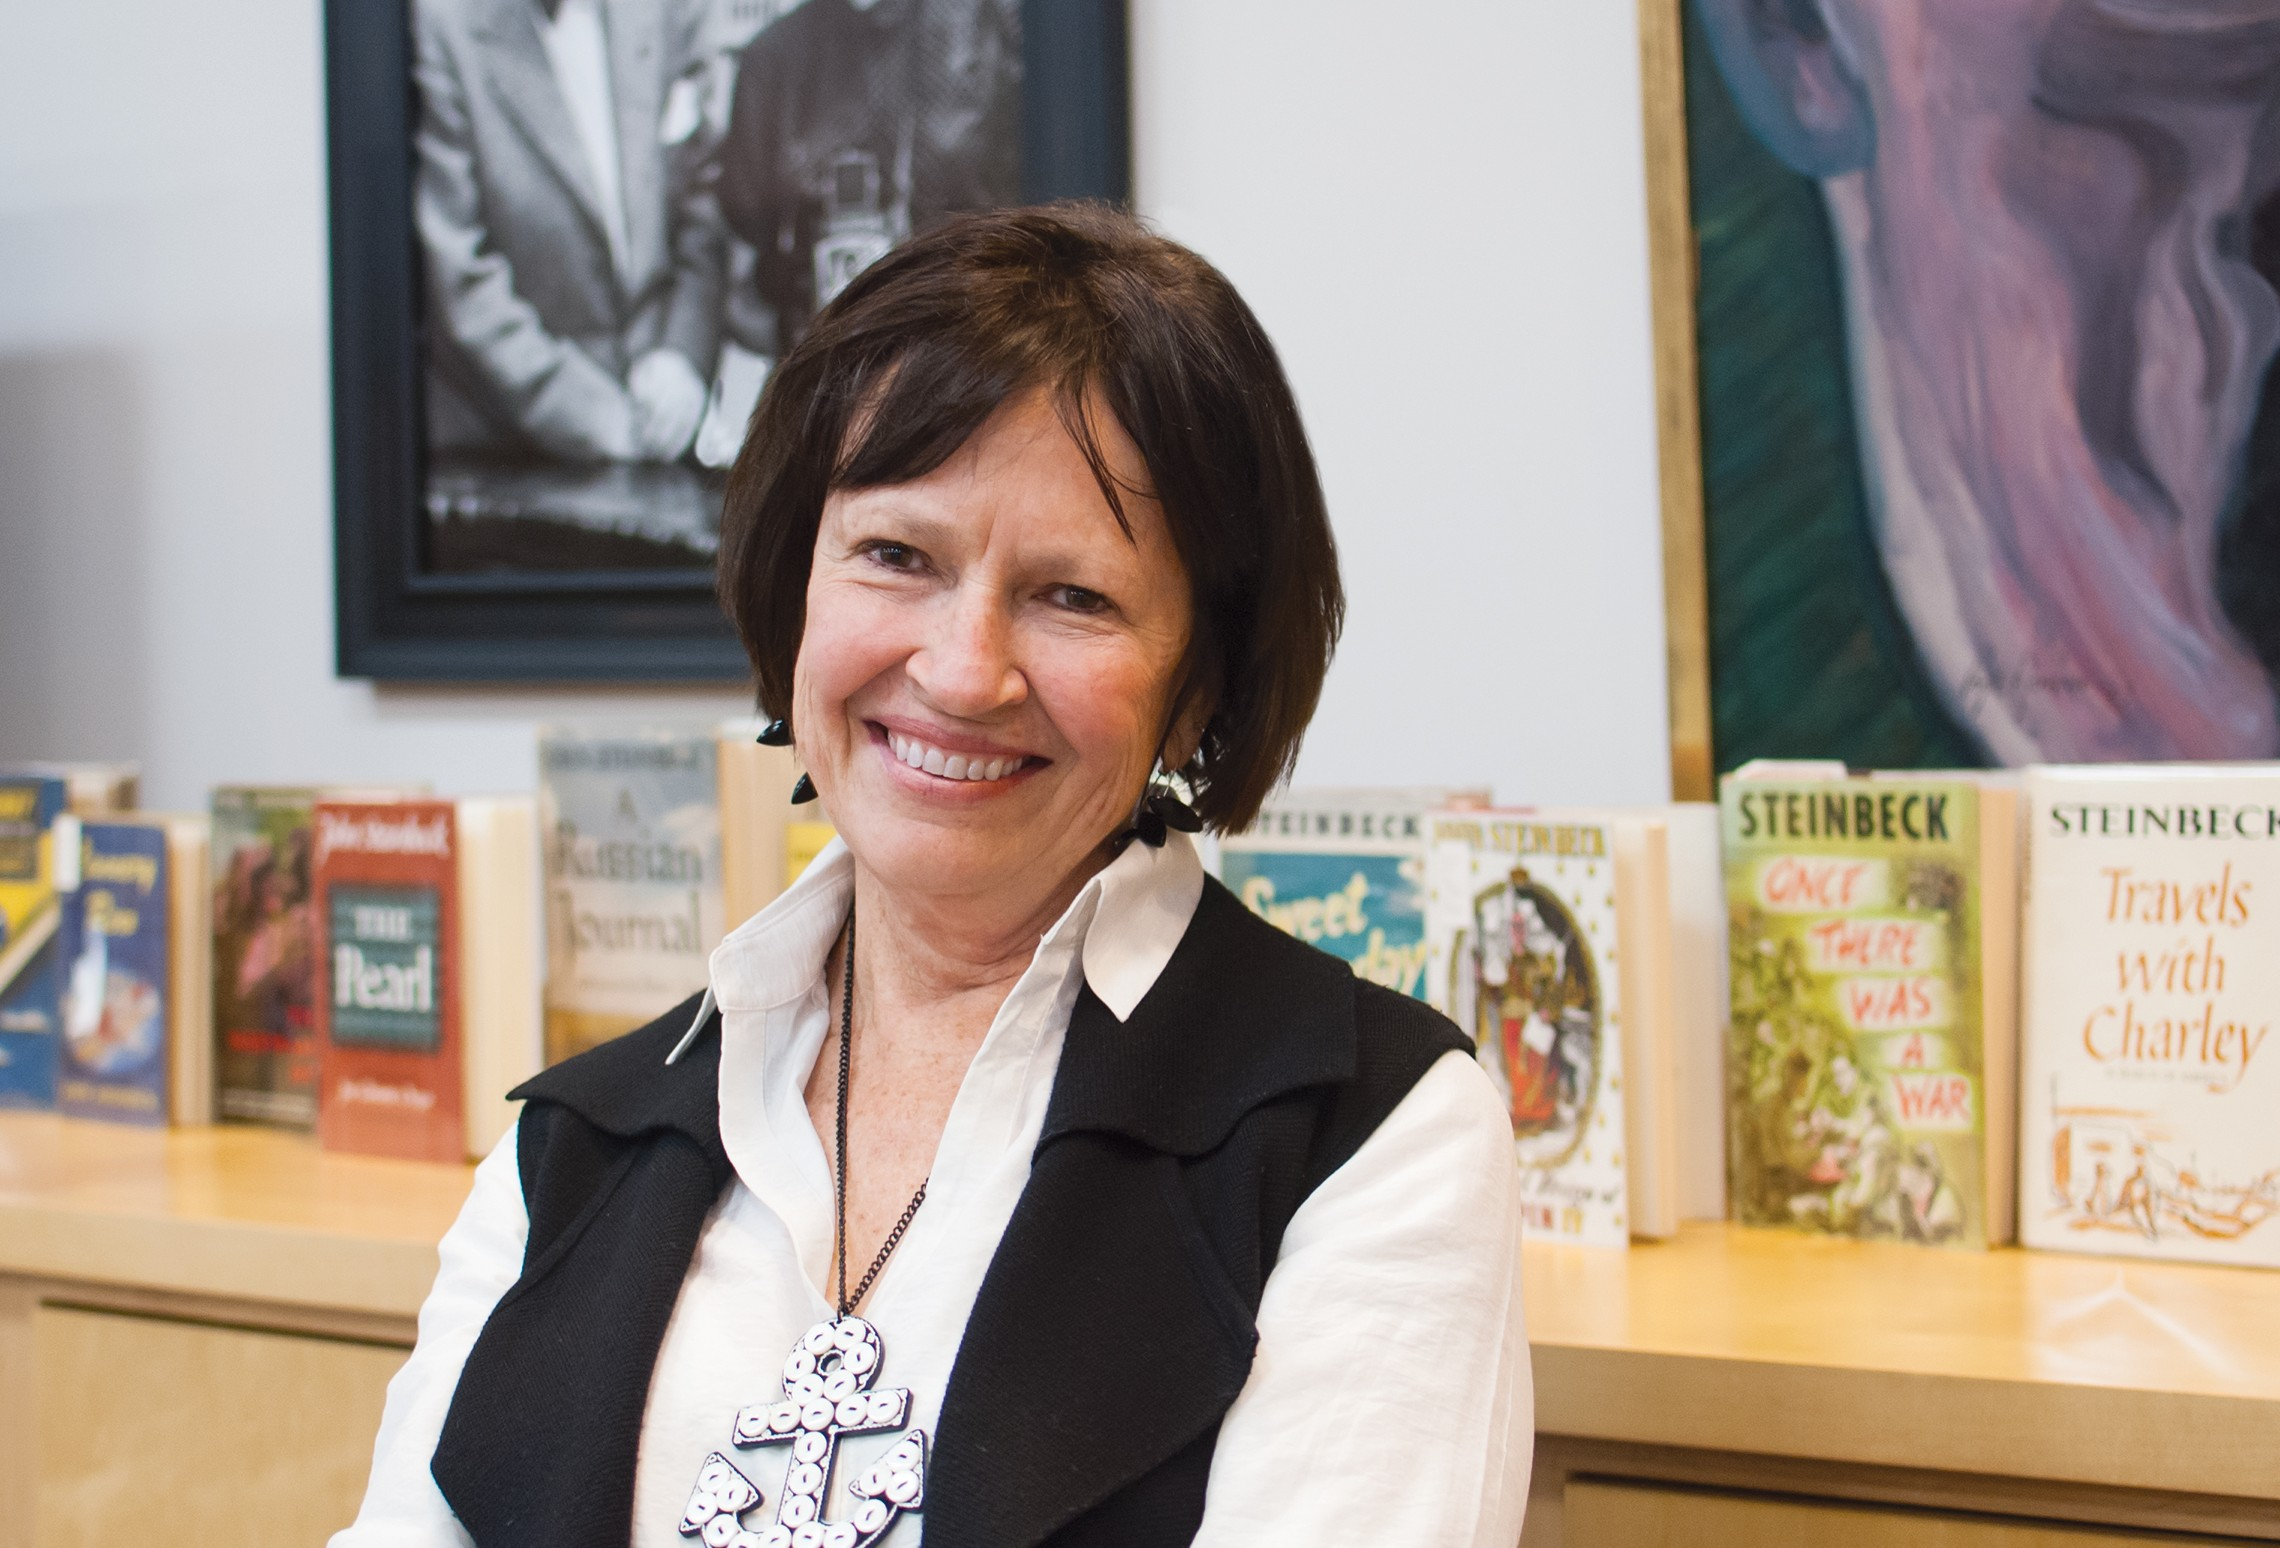 Susan Shillinglaw '73, an authority on the work of John Steinbeck and a professor at San Jose State University in California.